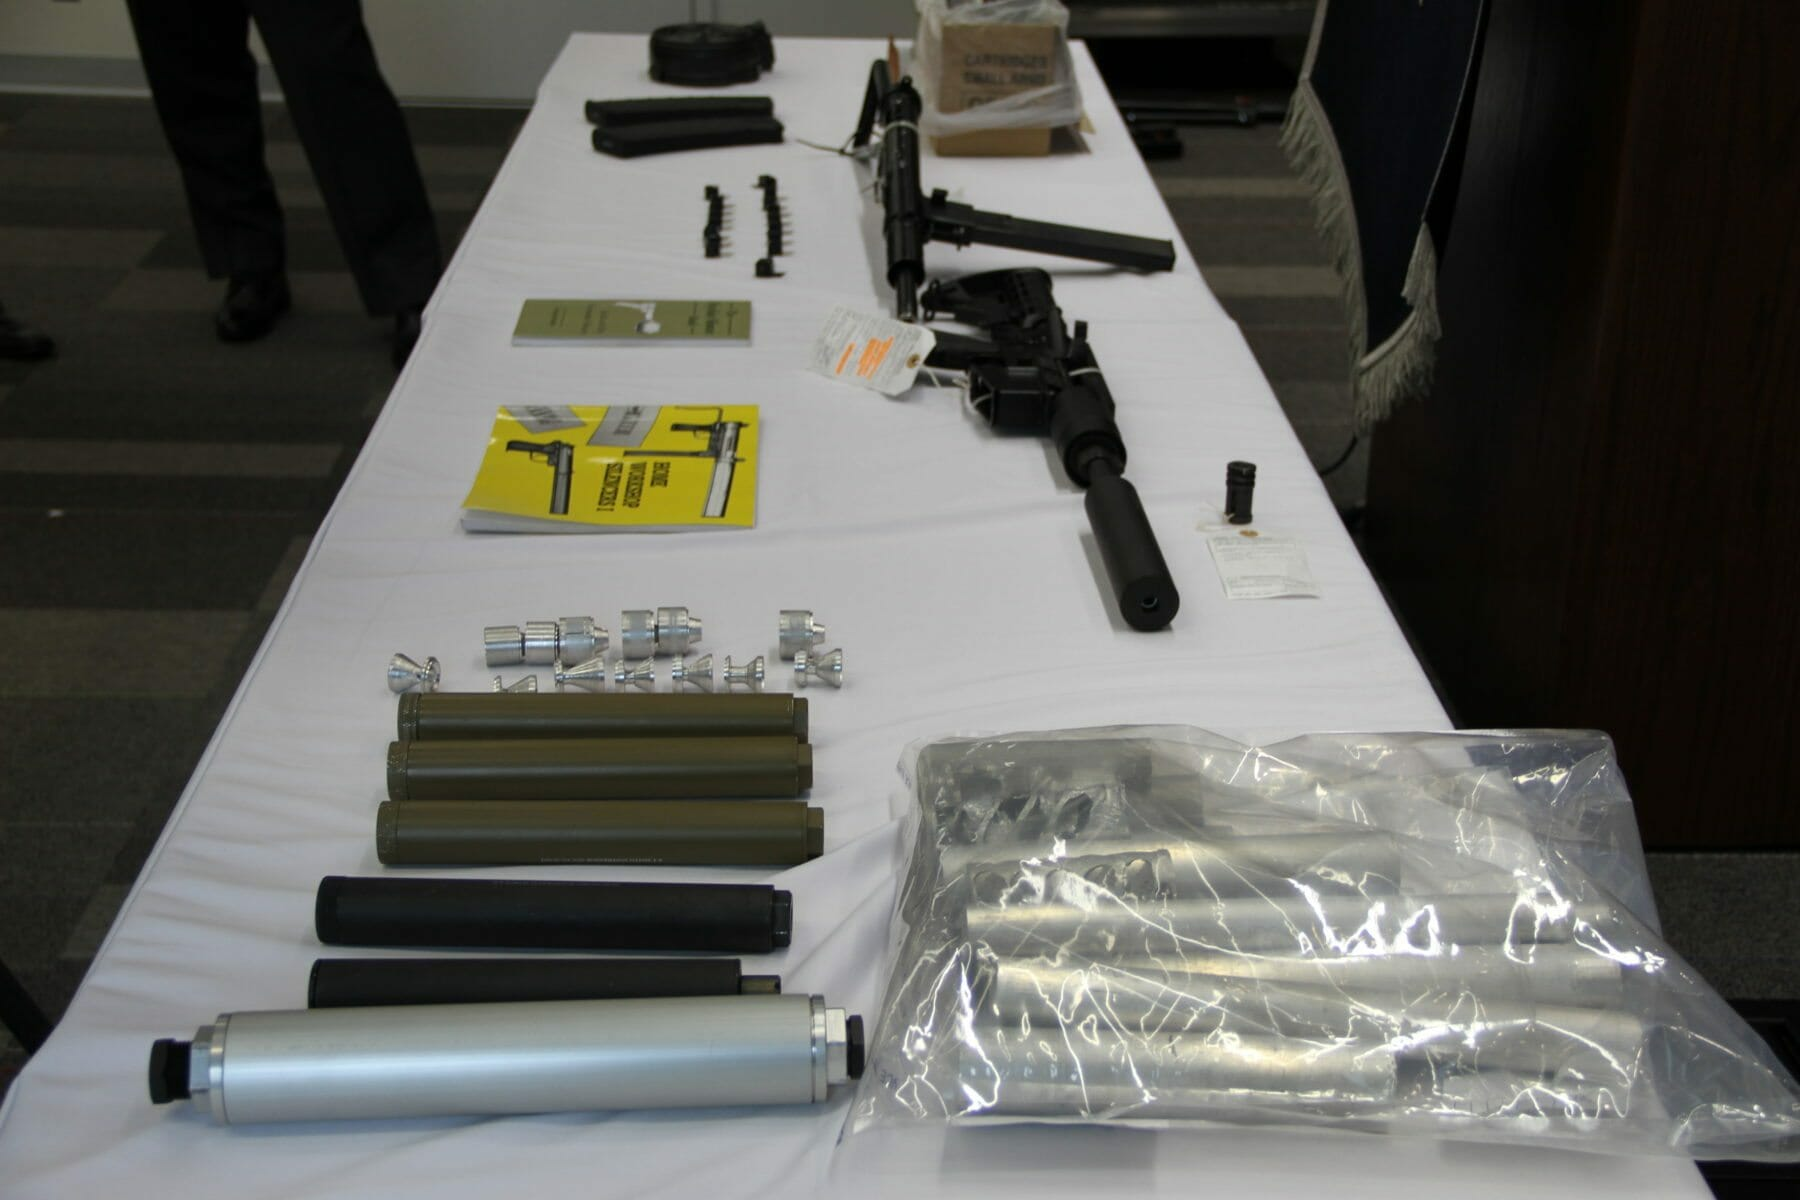 Charges Laid Against Alleged Firearms Trafficker